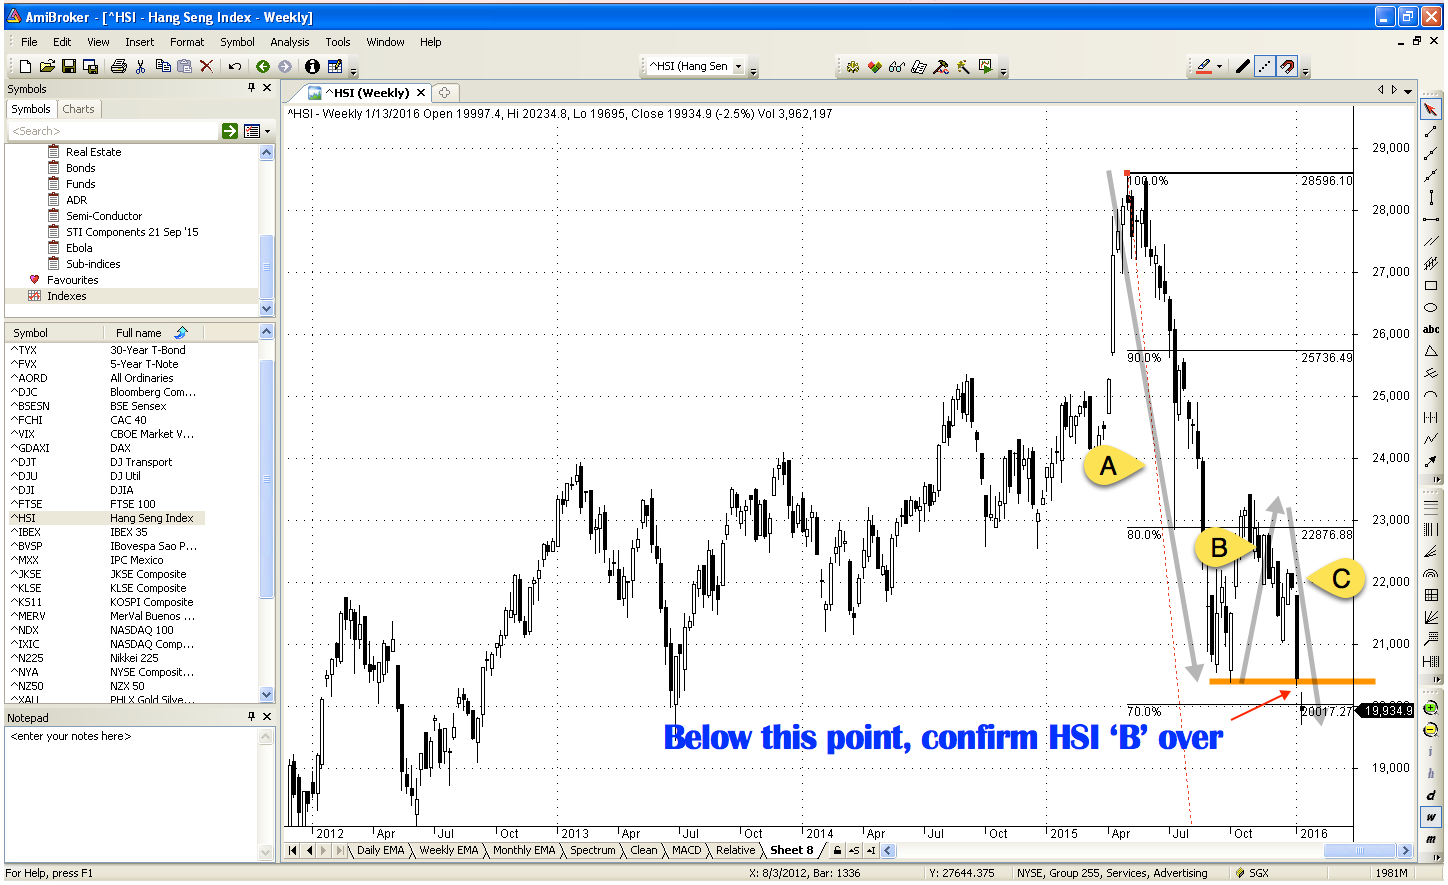 Hang Seng Index breaks 'A' low, confirms in 'C' wave